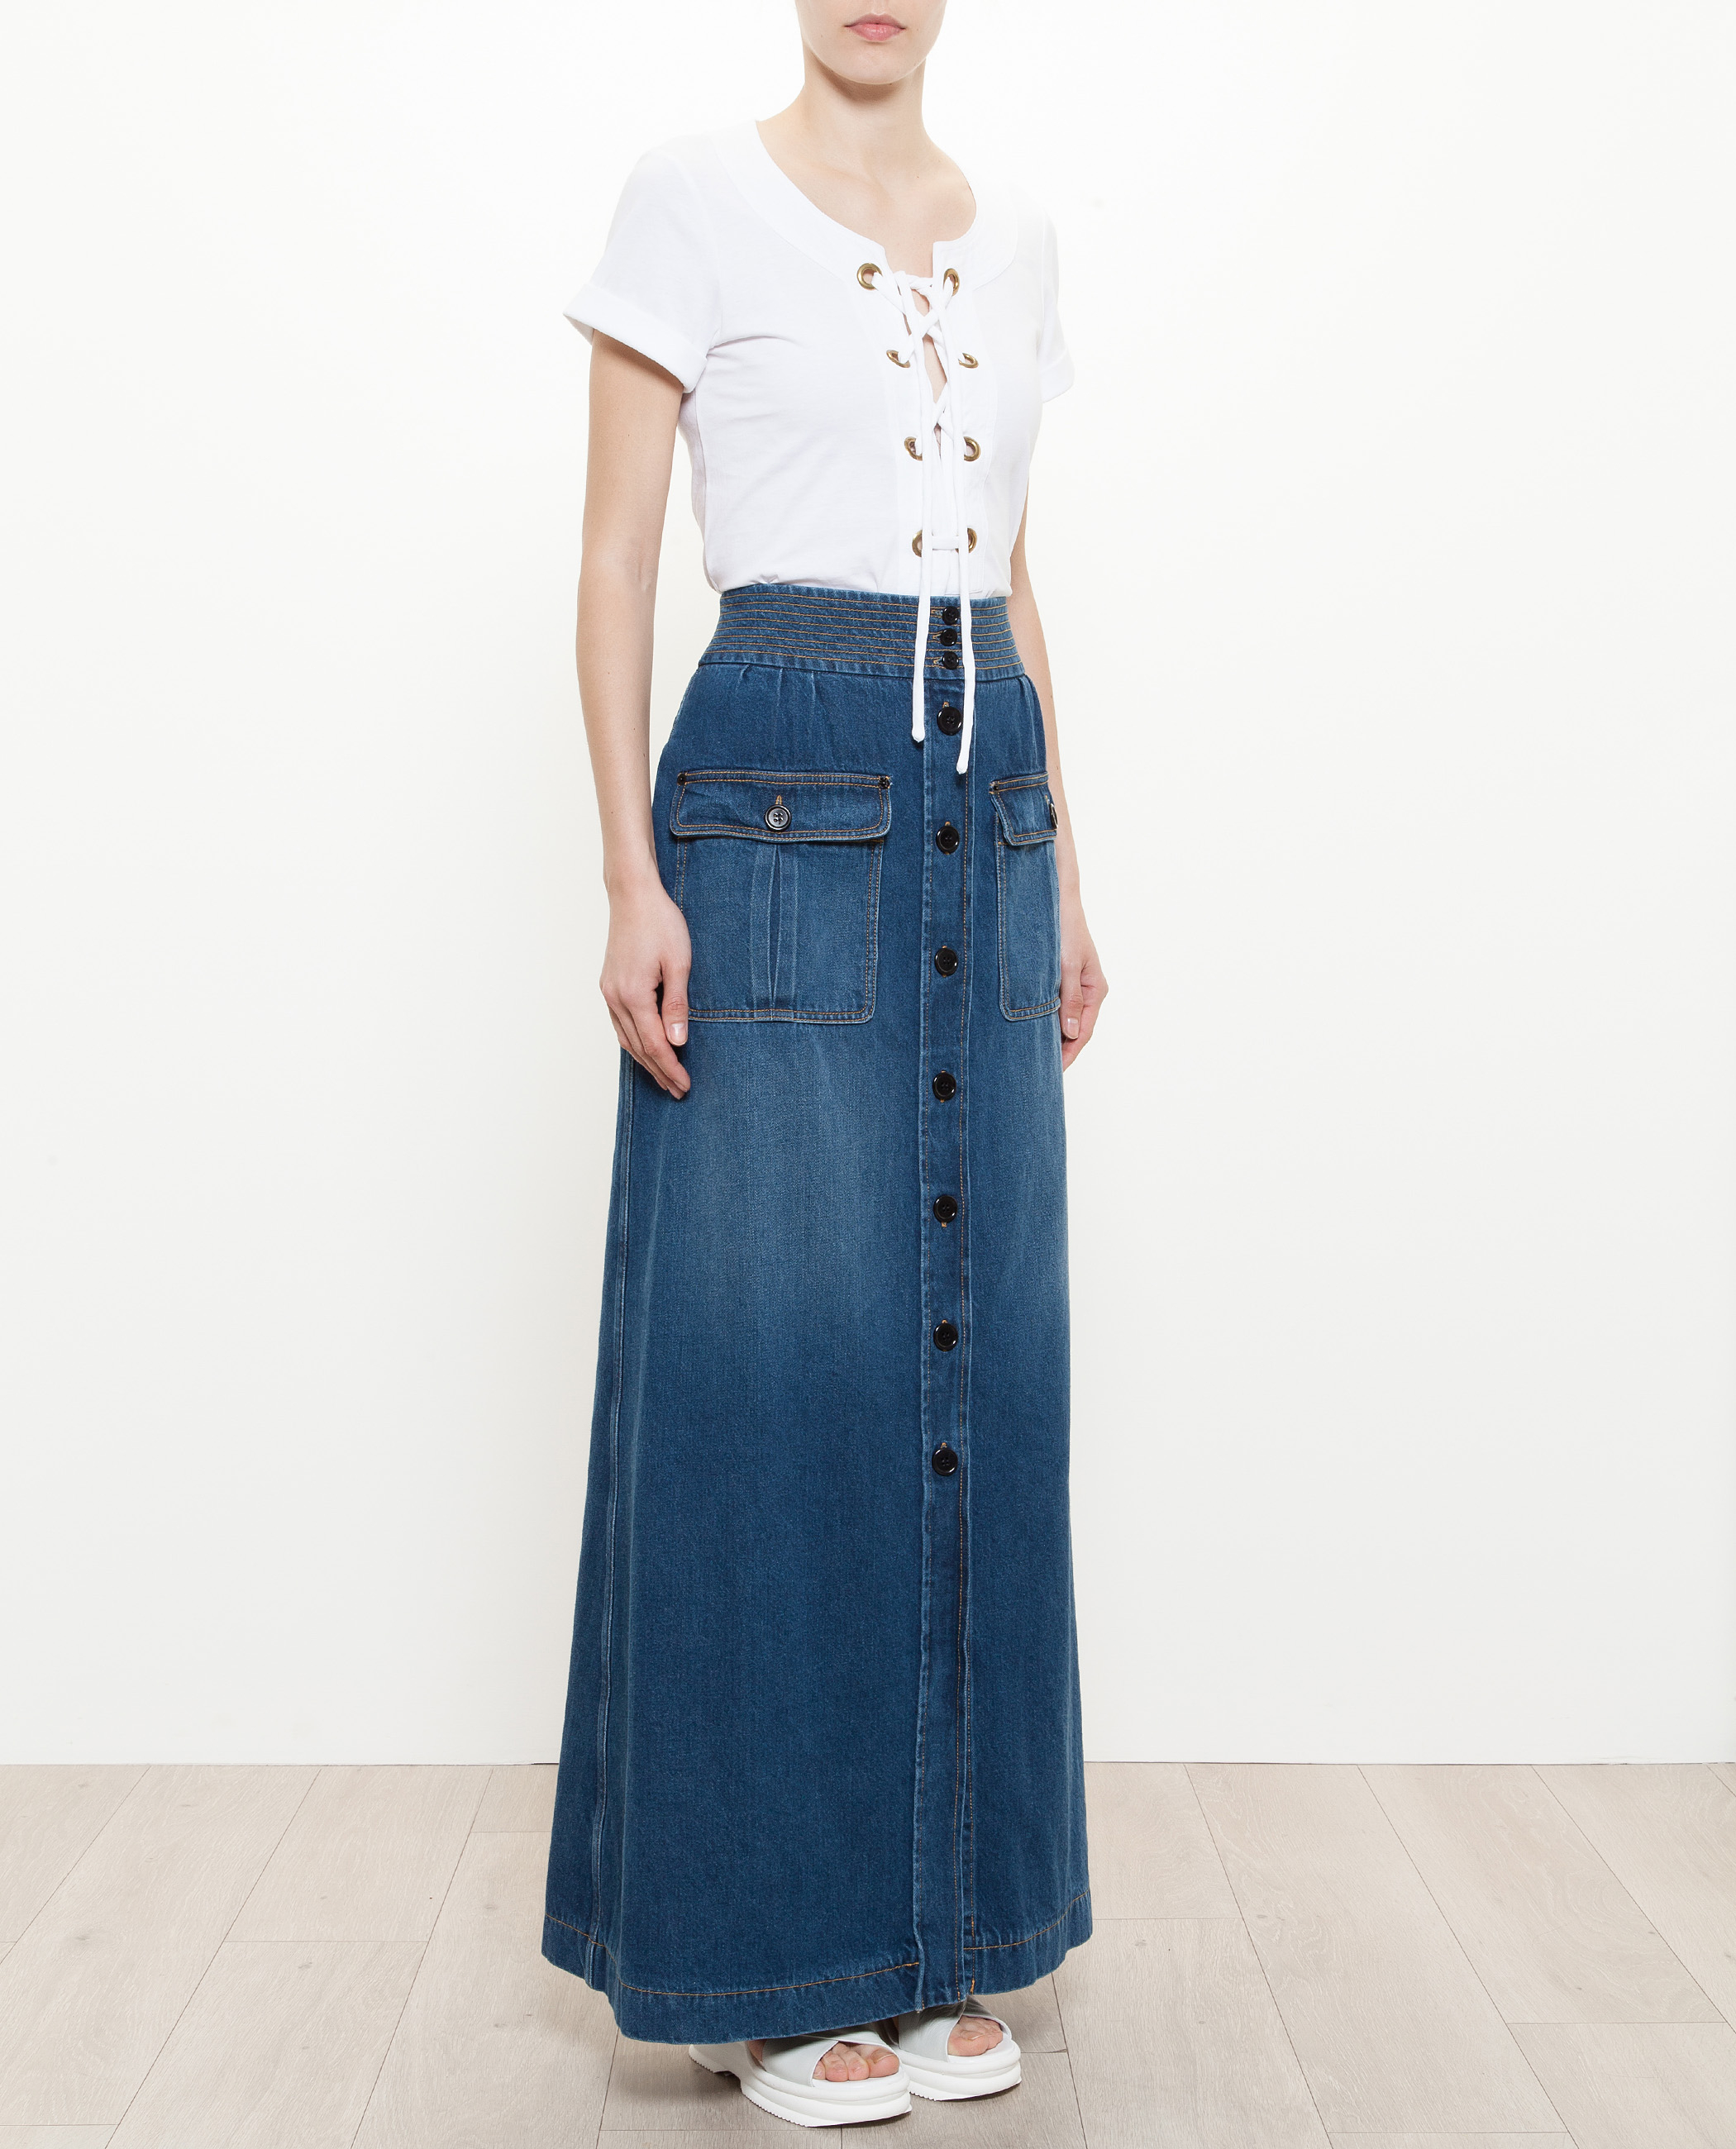 Chloé Long Denim Skirt in Blue | Lyst